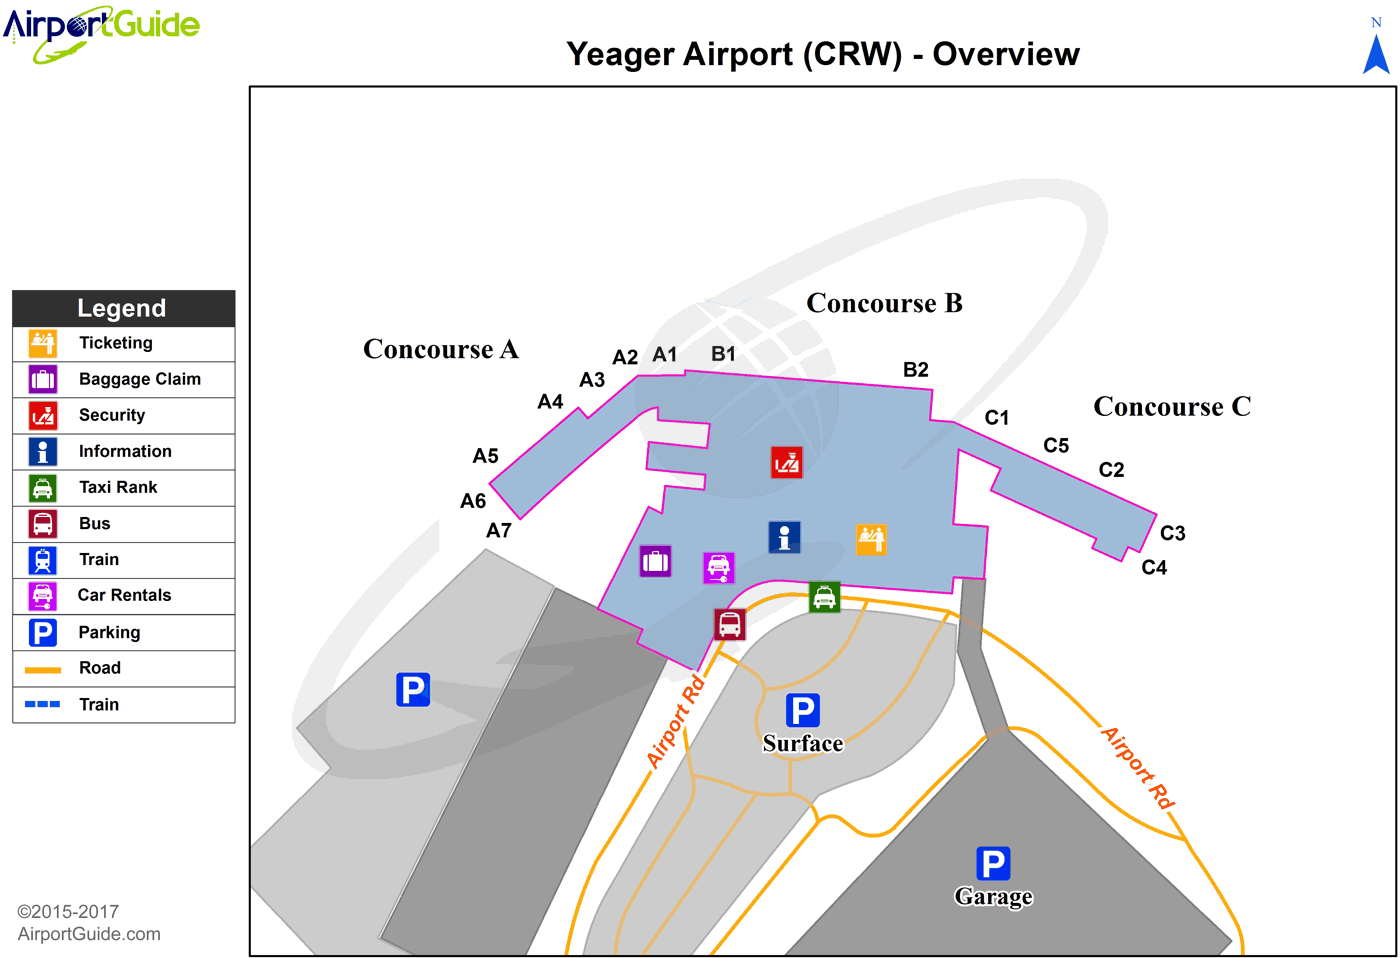 Charleston - Ross County (CRW) Airport Terminal Map - Overview